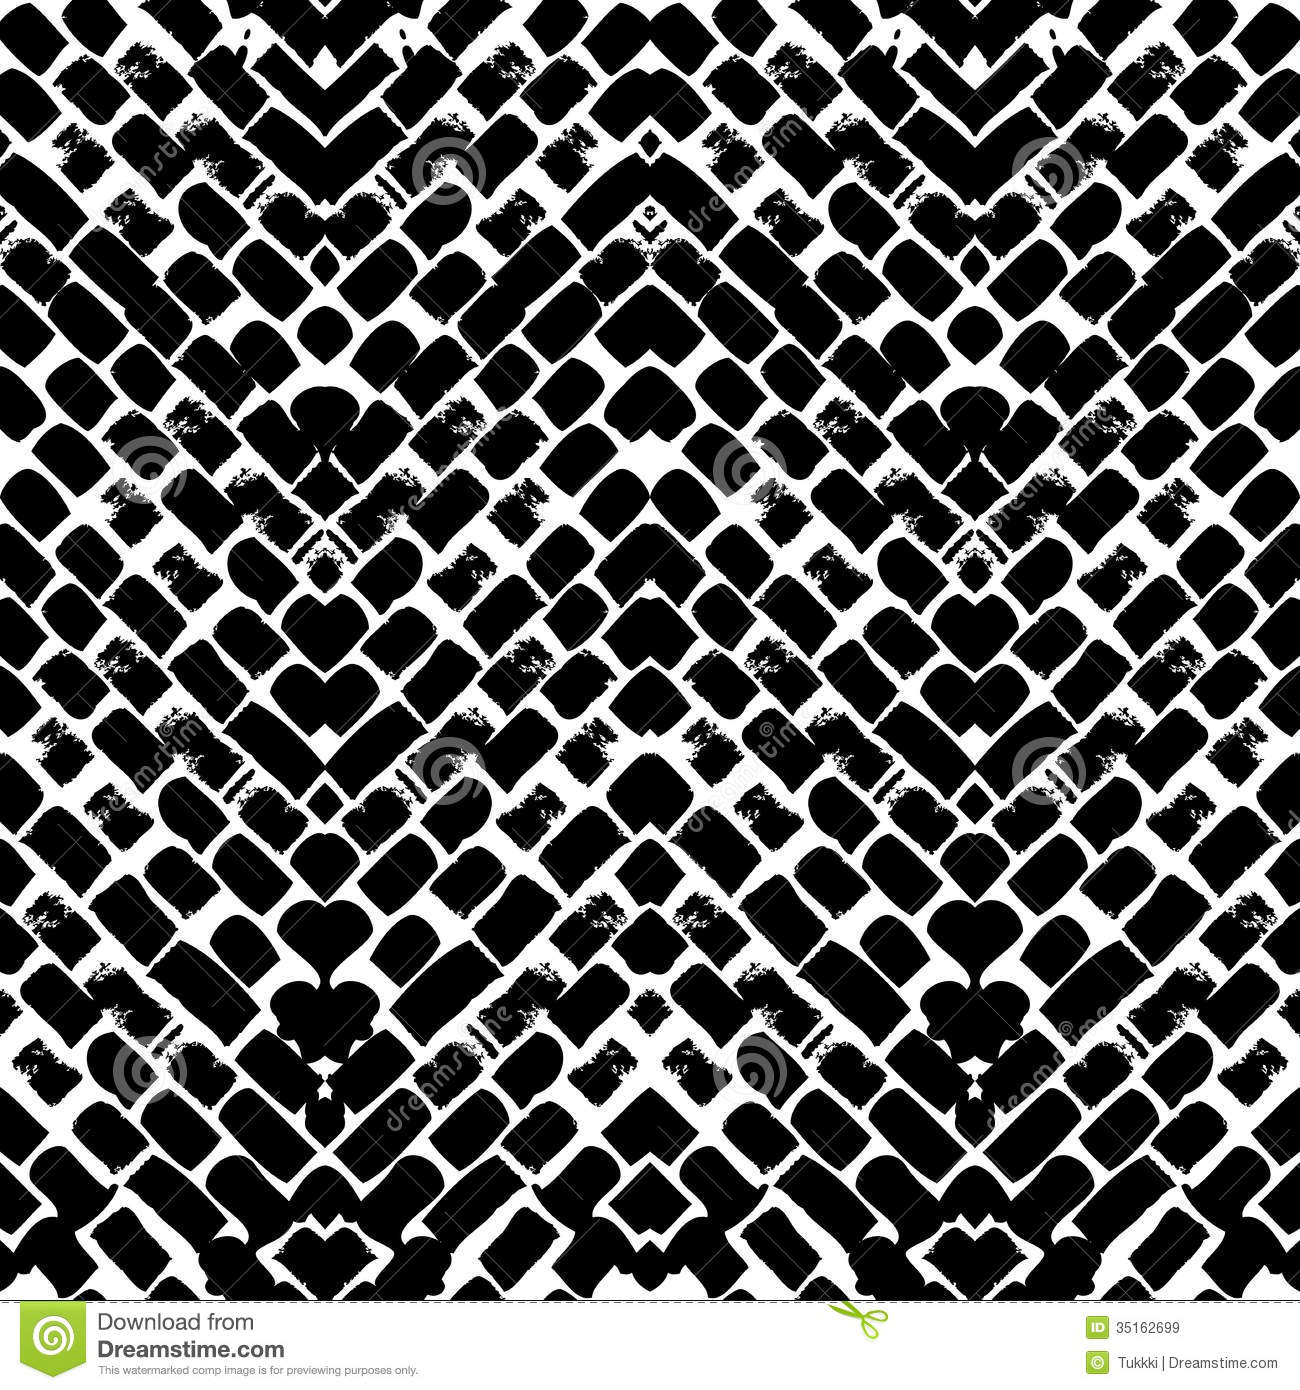 Black and white hand painted Black And White Tribal Print Wallpaper